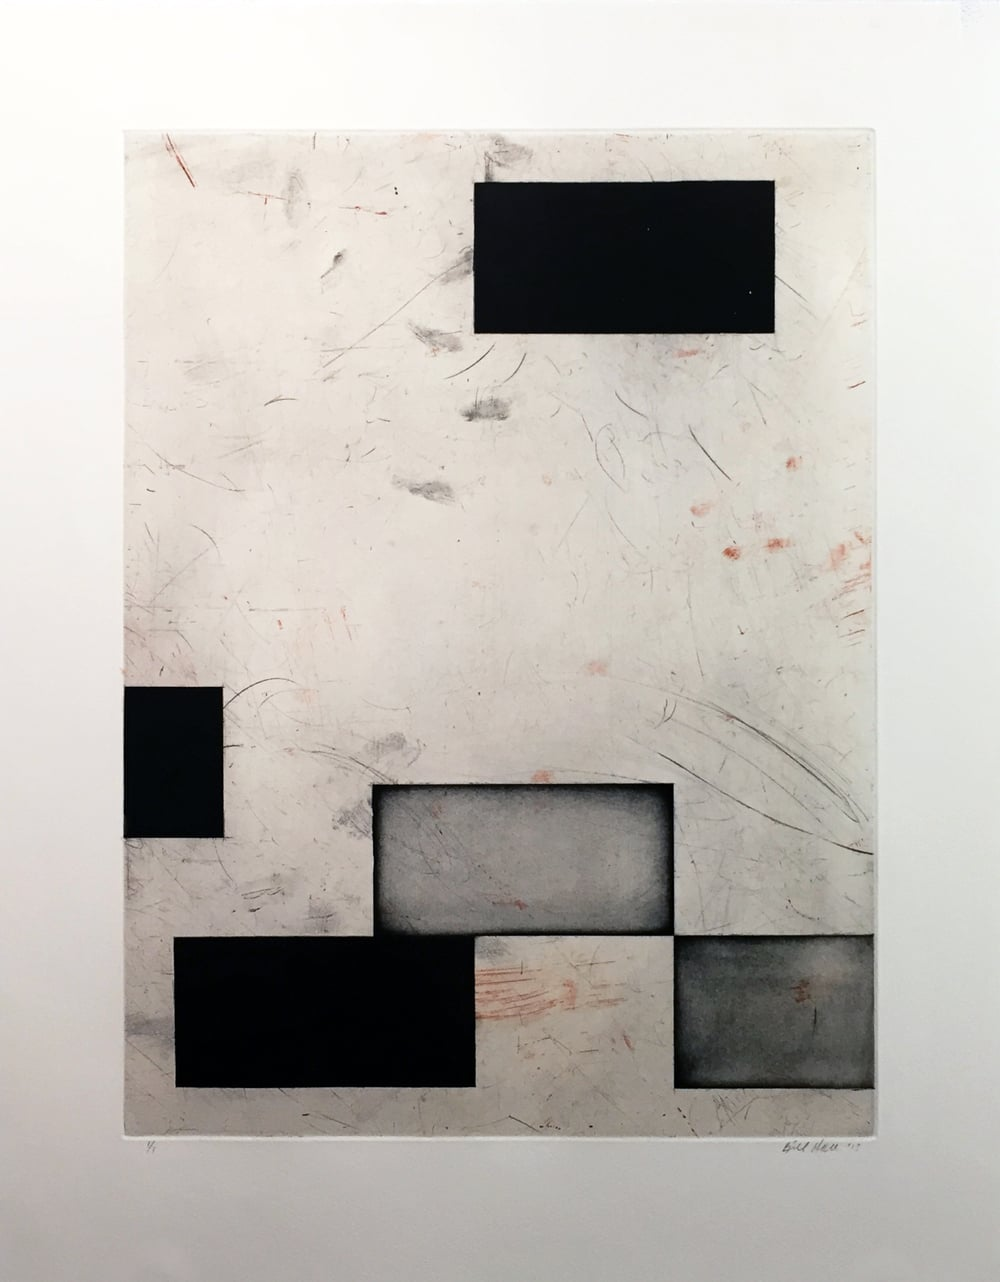 Breaking the Grid I, 2013, aquatint, drypoint, and abrasion,  25 x 20 inches